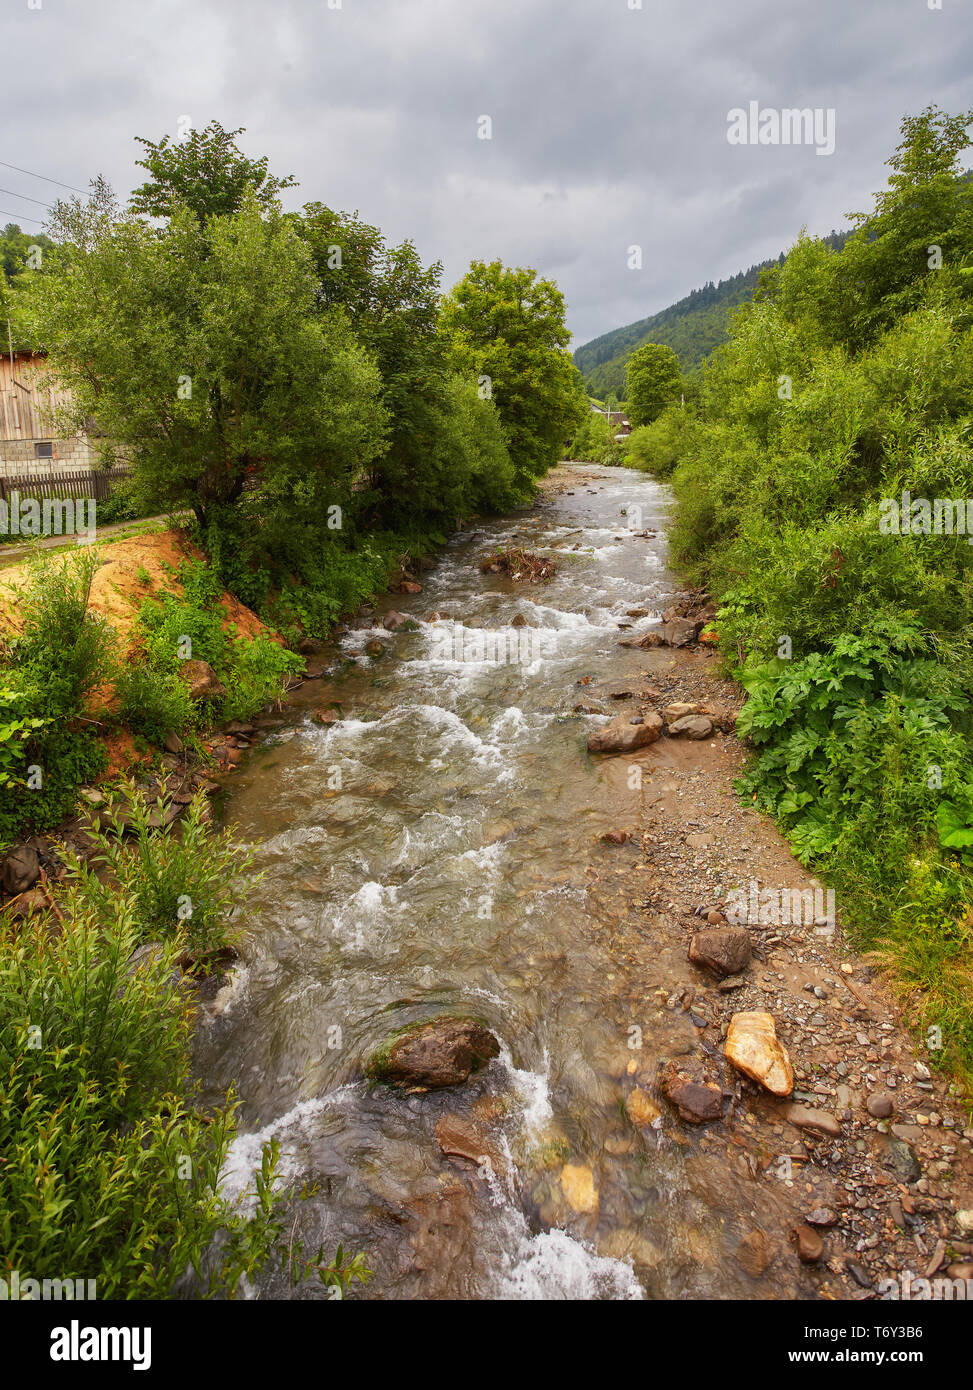 Beautiful mountain river. Tourism in the Carpathian Mountains. Western Ukraine. Tall pines and Norway spruces. - Stock Image